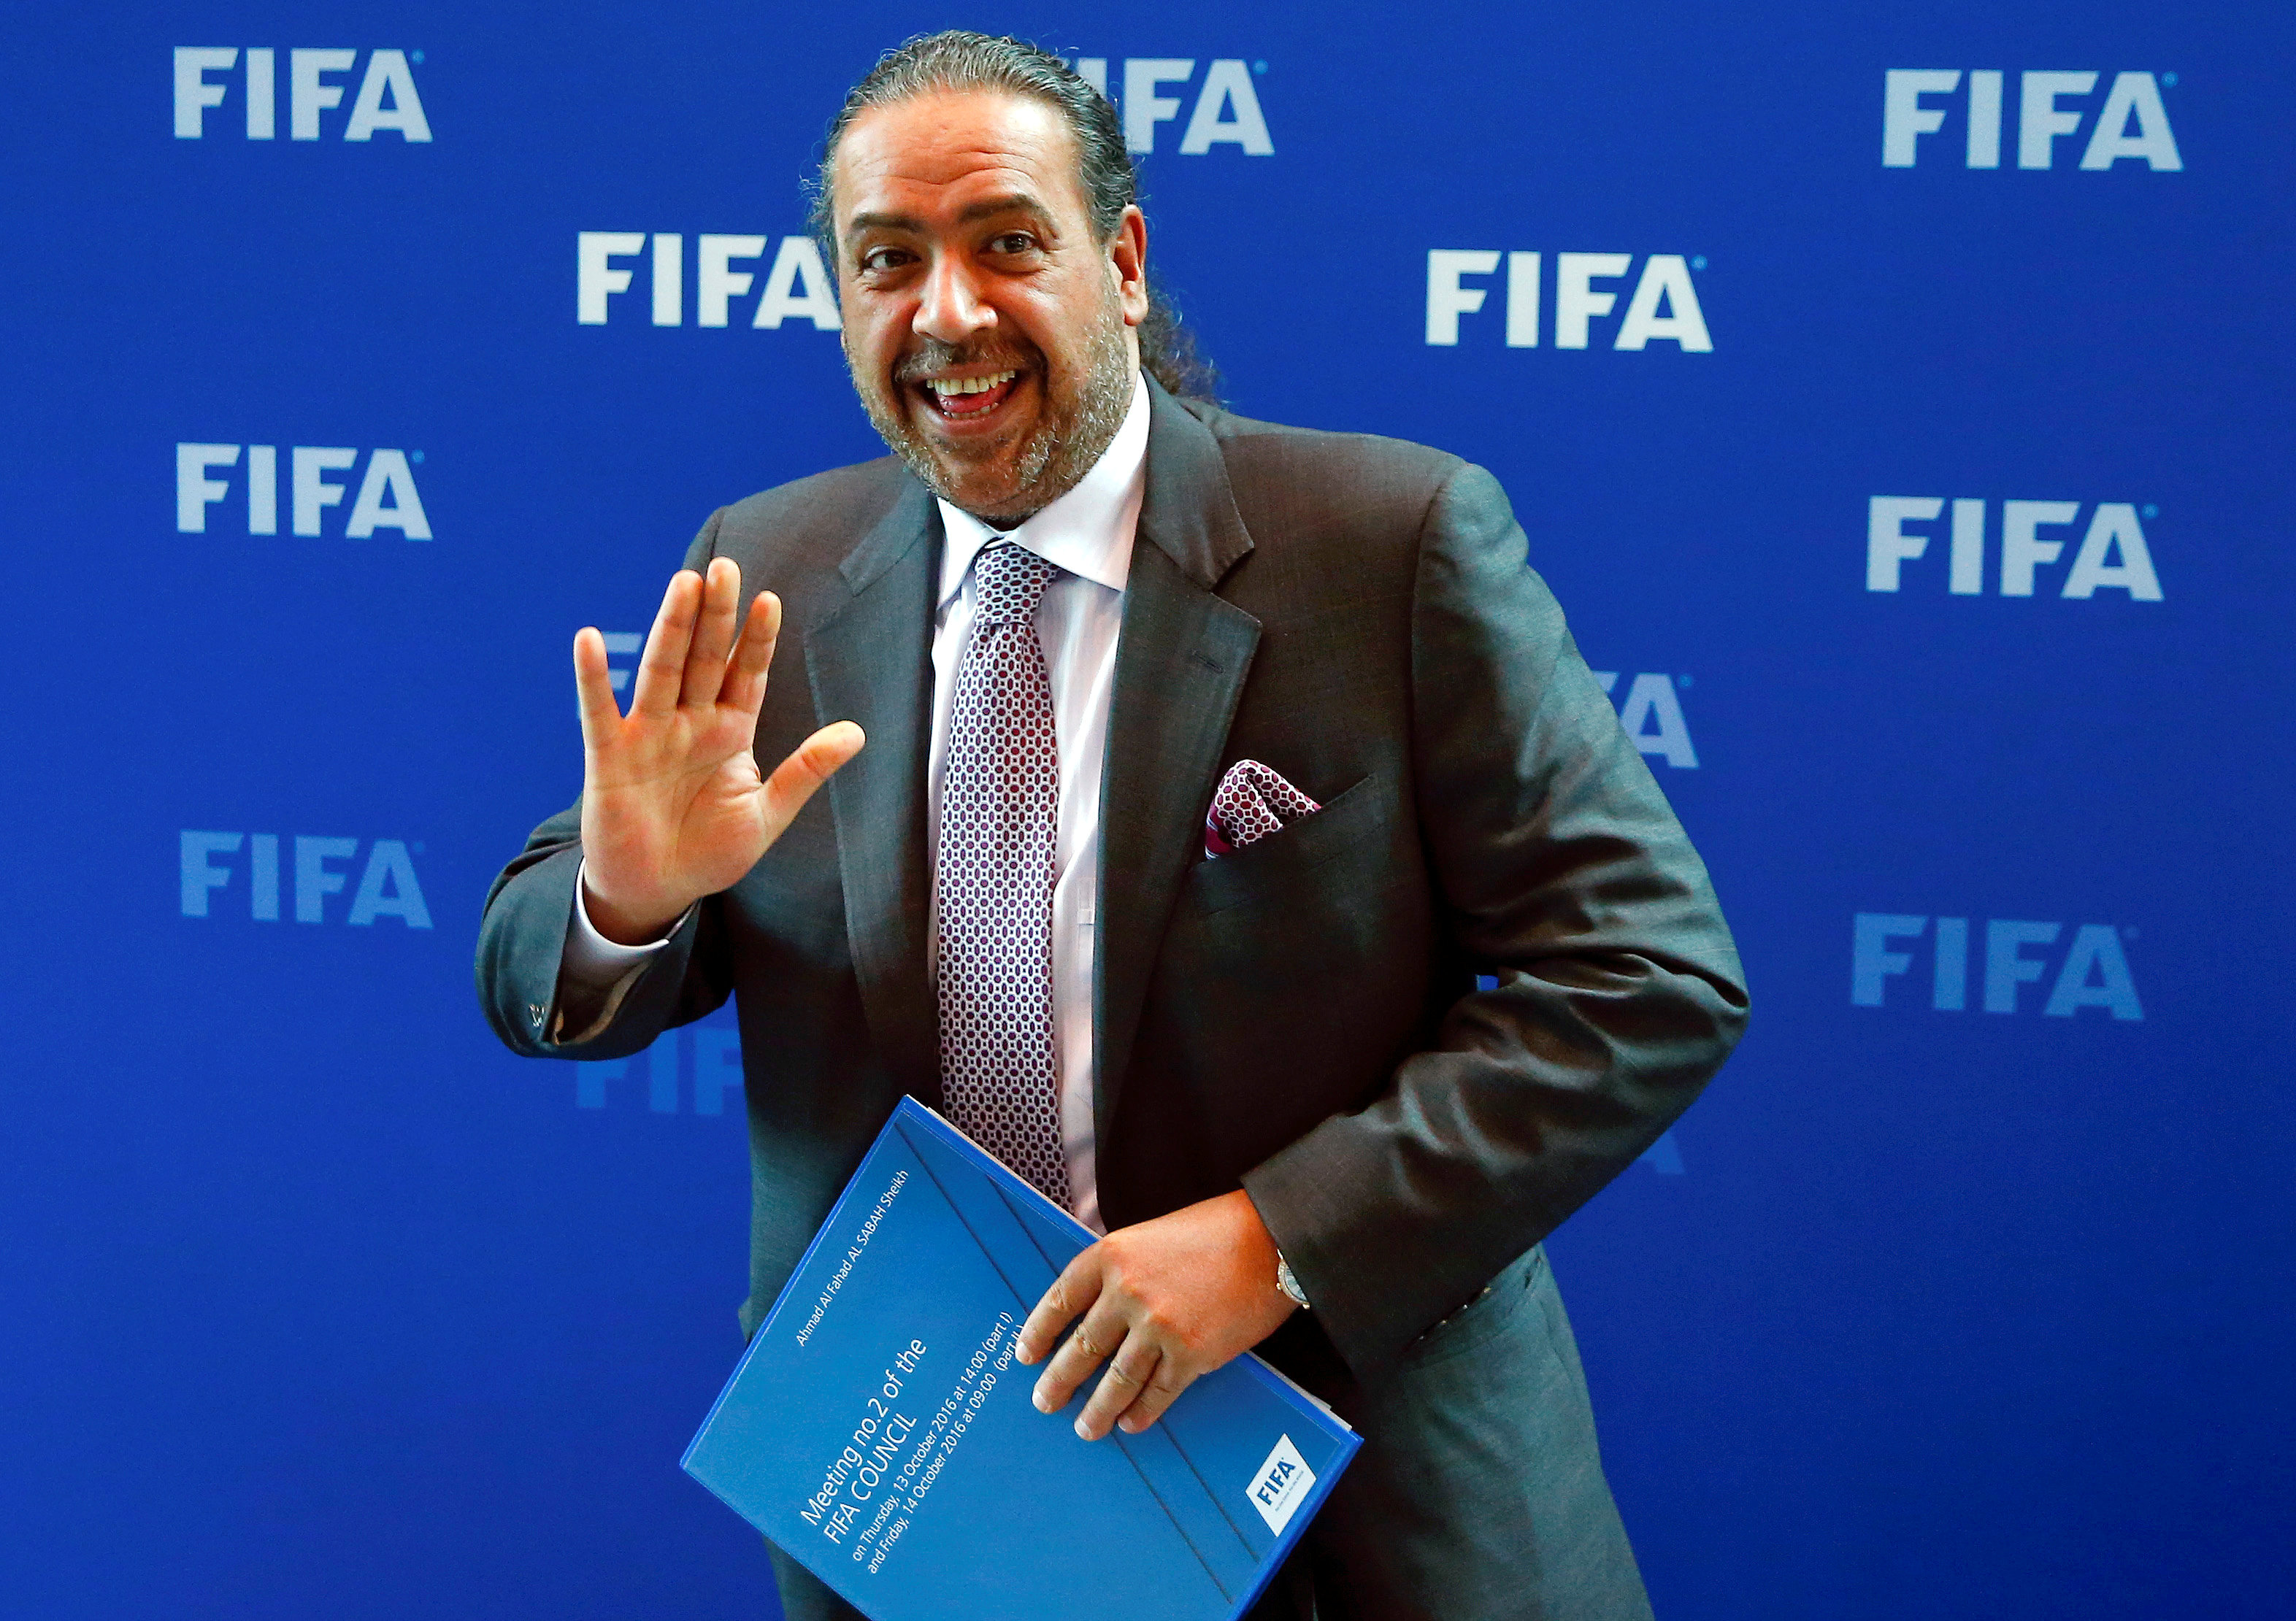 Asia Olympic chief quits FIFA role over bribery scandal